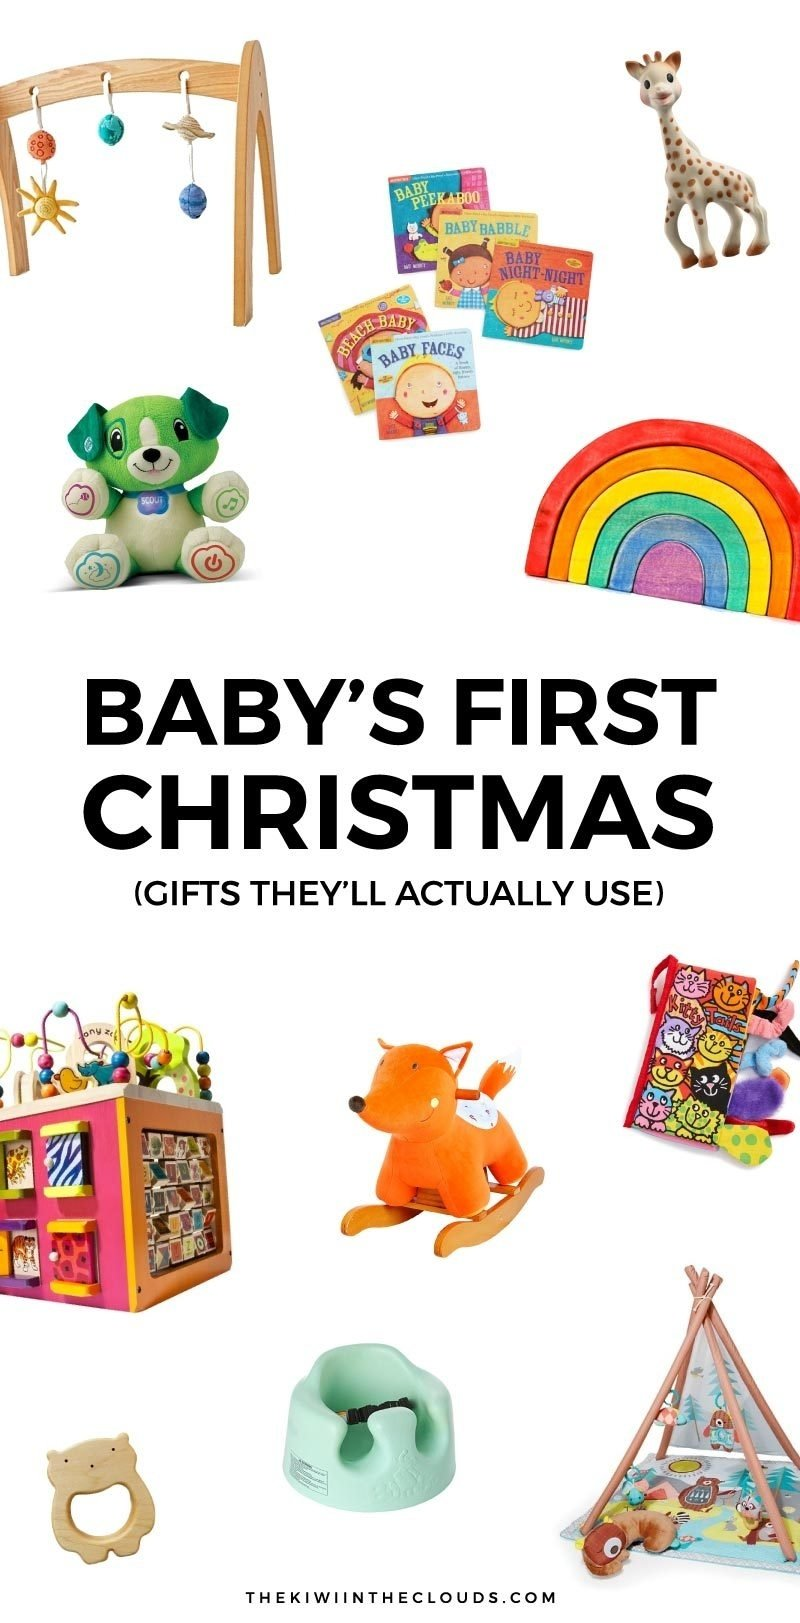 10 Ideal Baby First Christmas Gift Ideas 11 babys first christmas gifts that will actually get used 2020